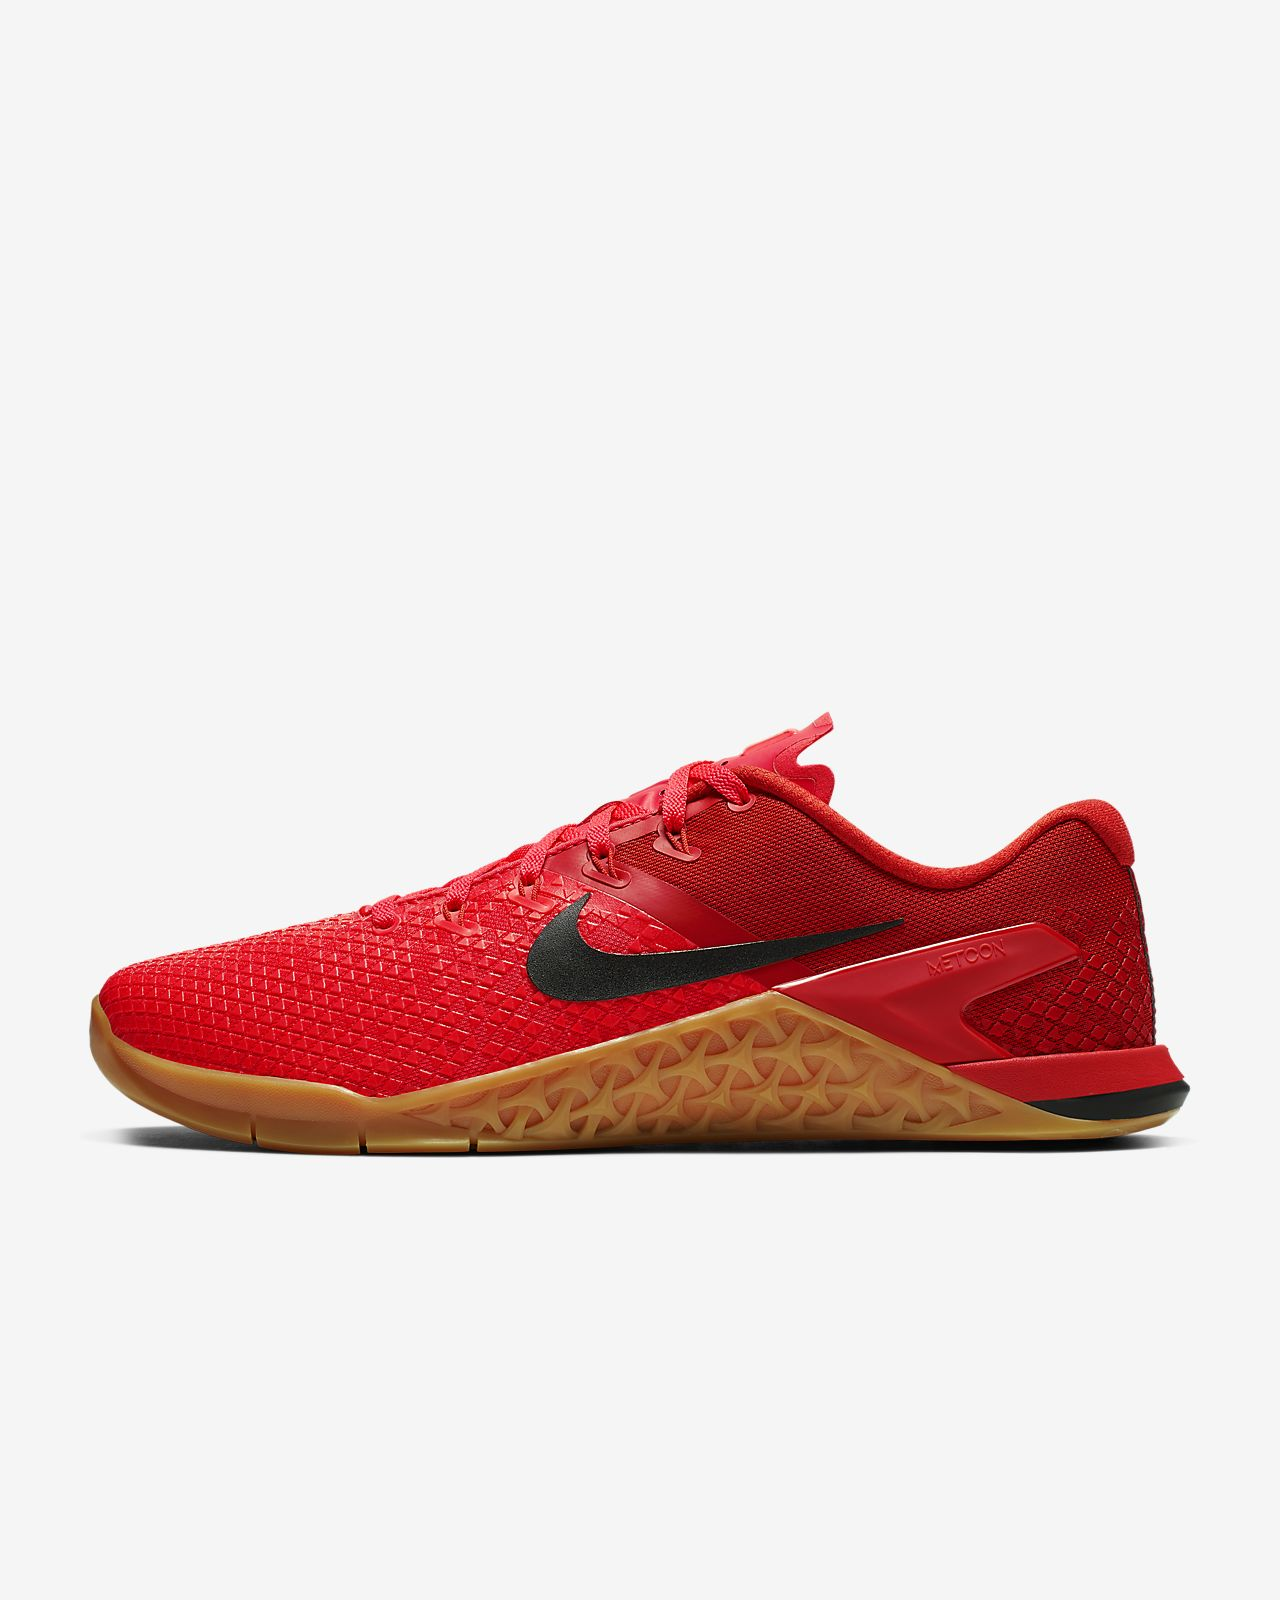 bcbb6a8580fb16 Nike Metcon 4 XD Men's Training Shoe. Nike.com